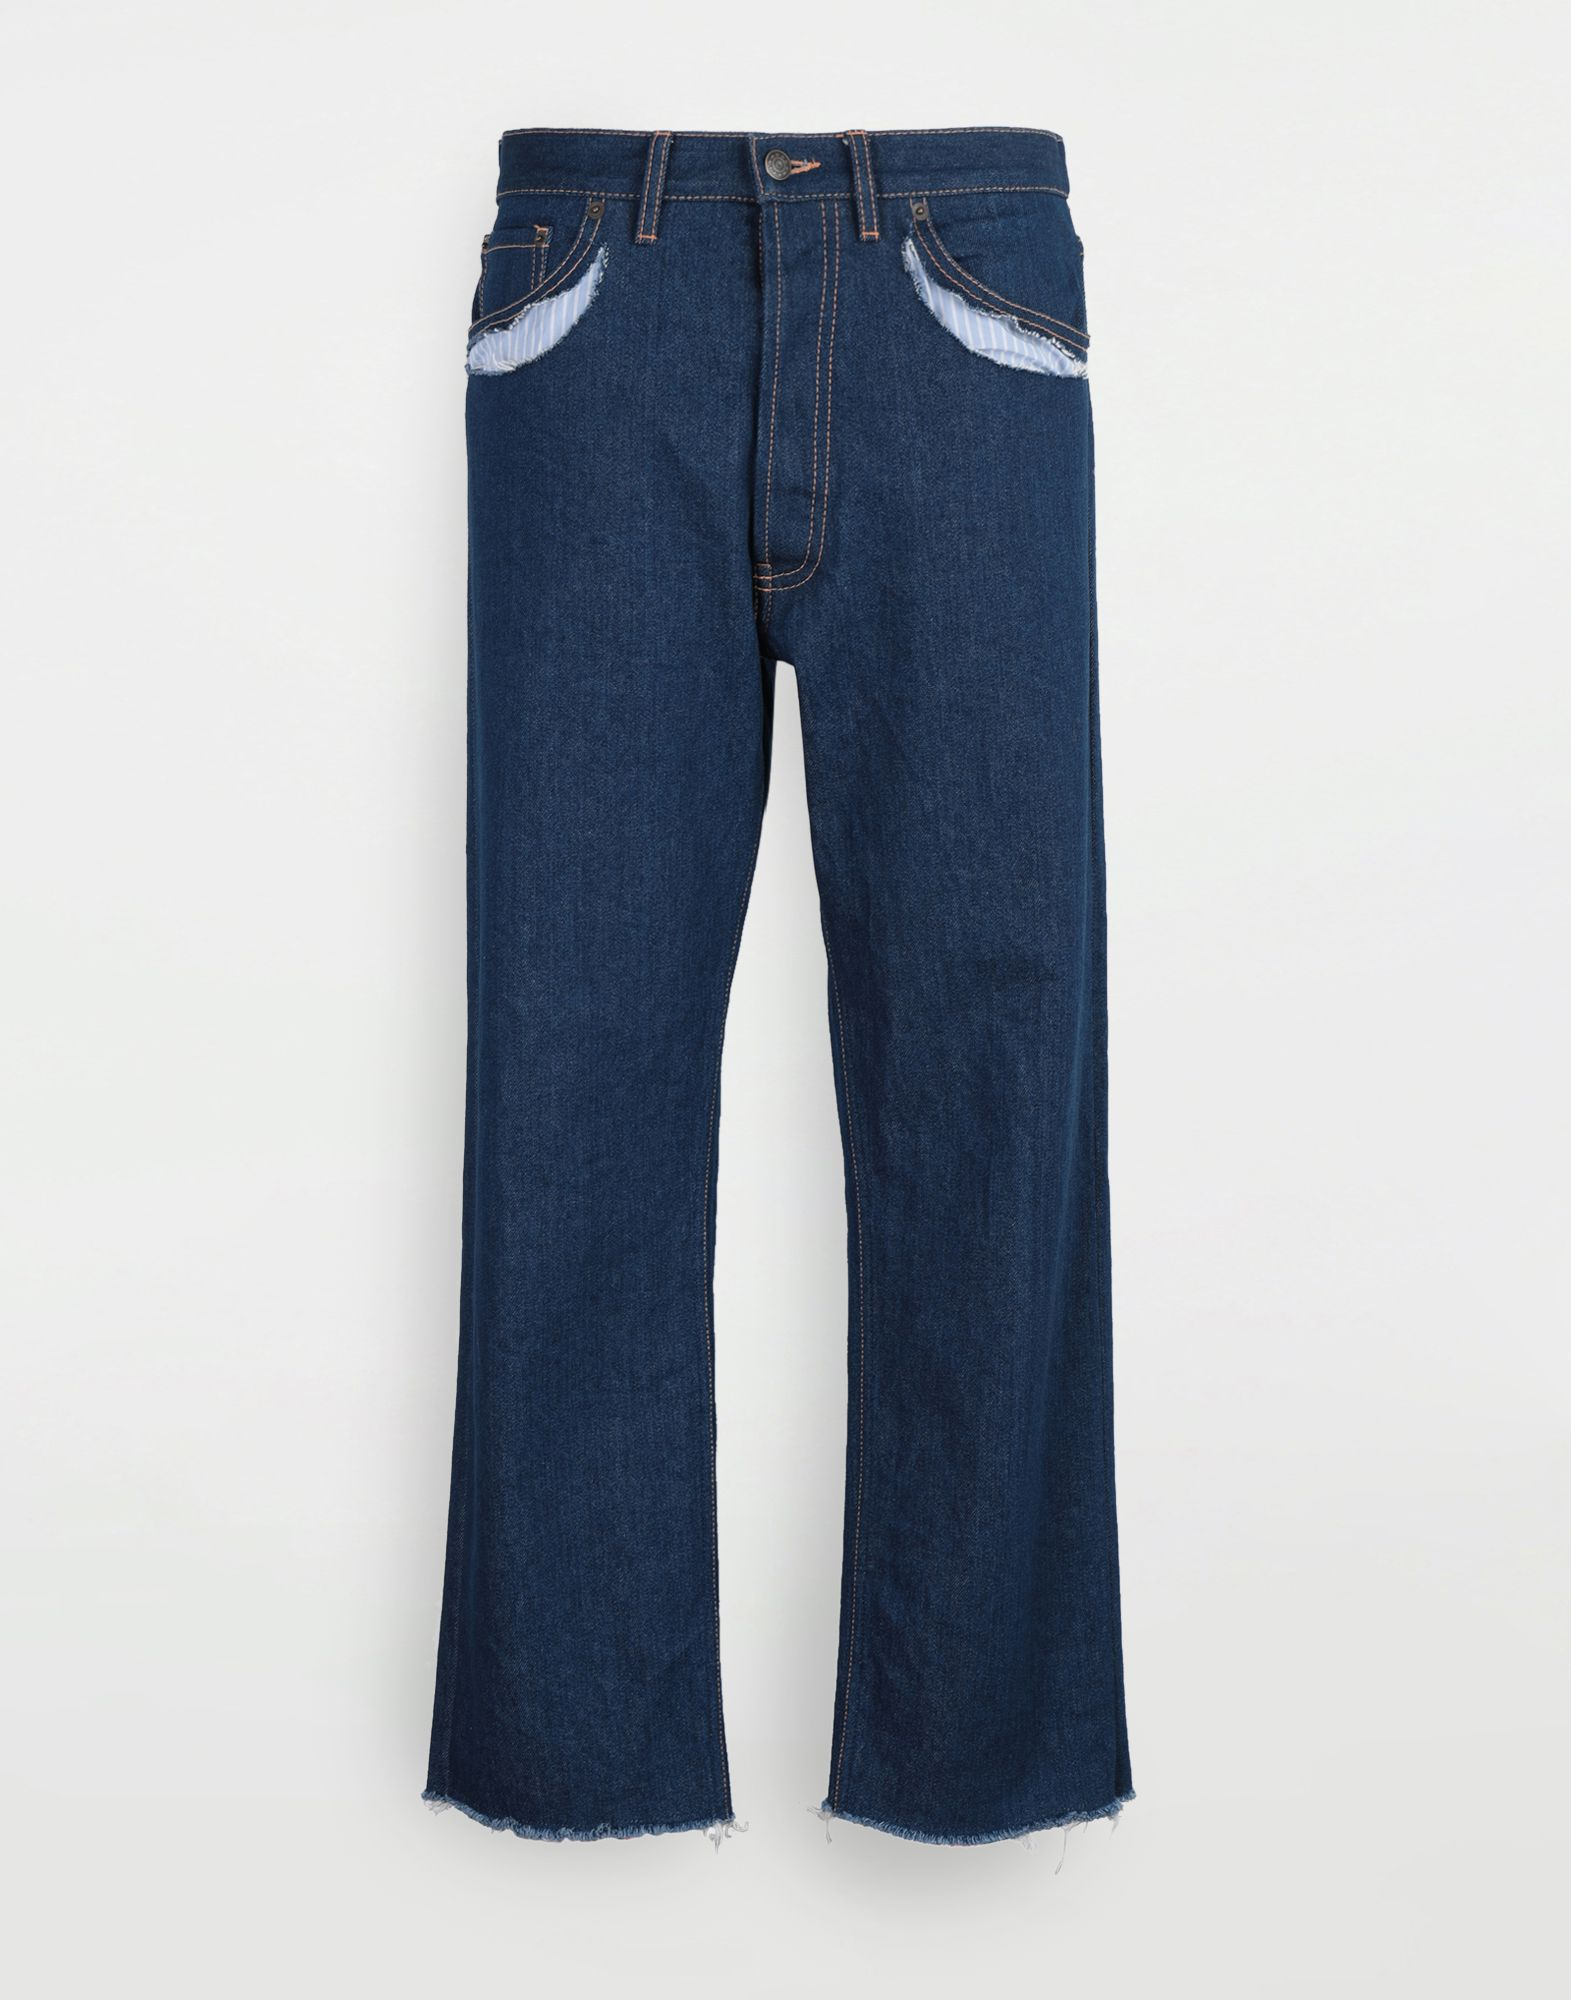 MAISON MARGIELA Décortiqué denim pants Jeans Woman f